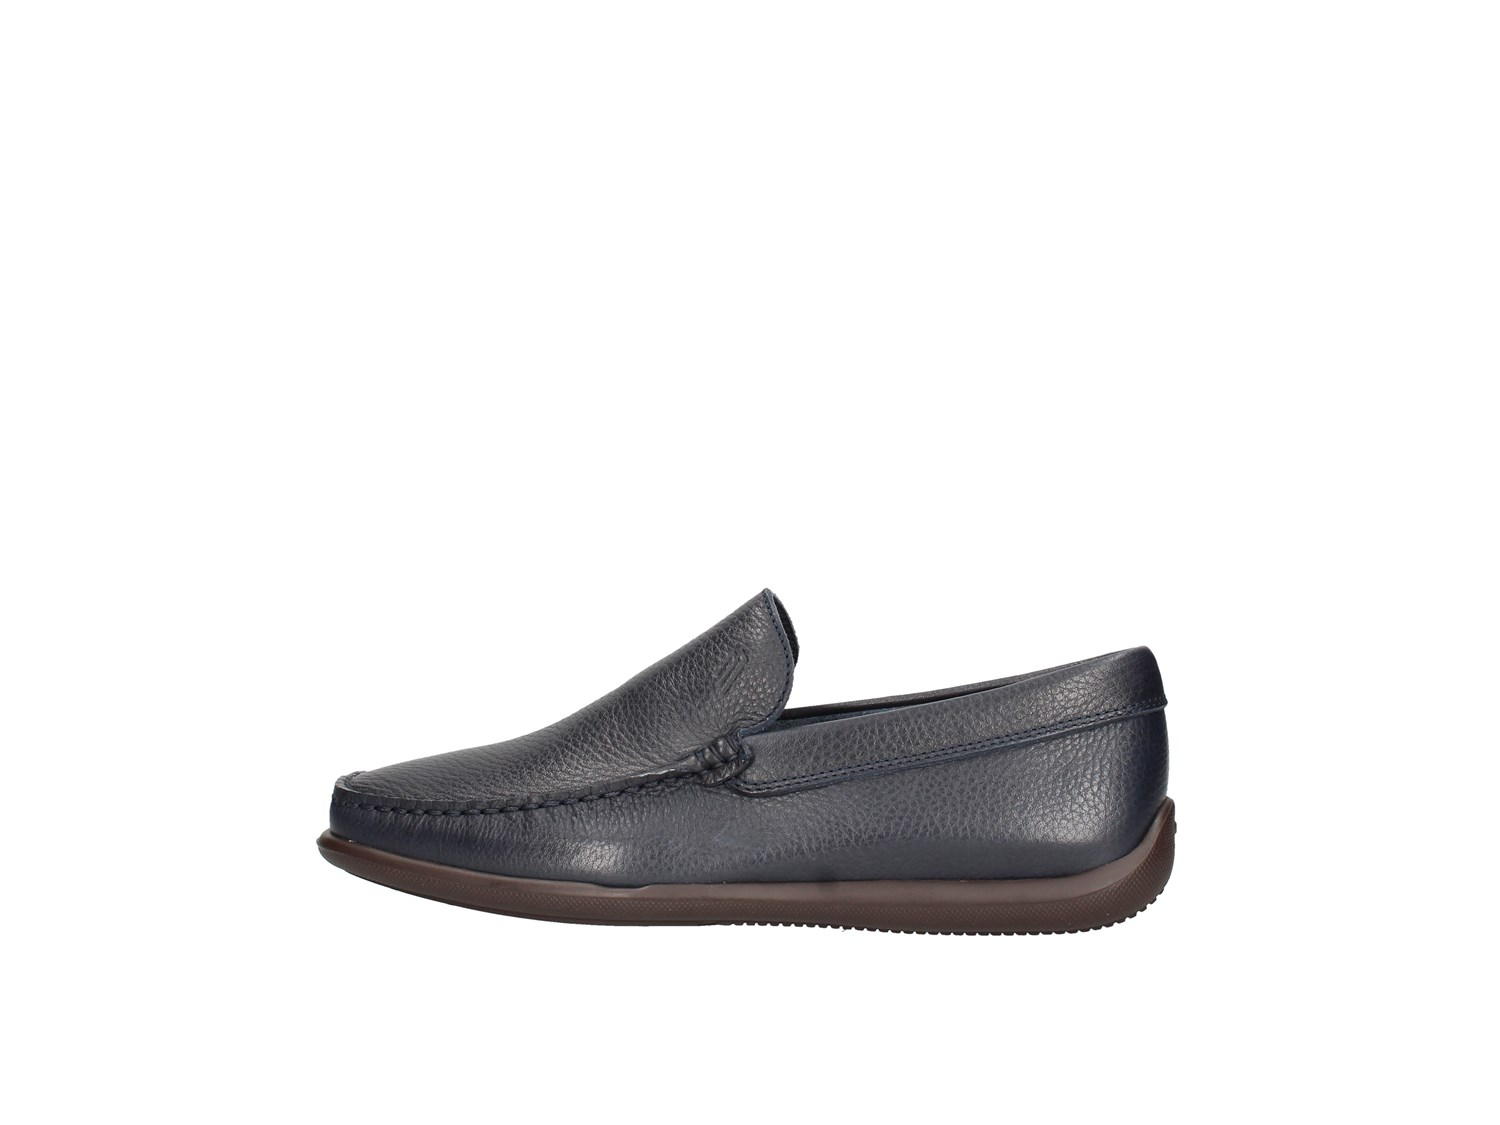 Frau 1484 Blue Shoes Man Moccasin